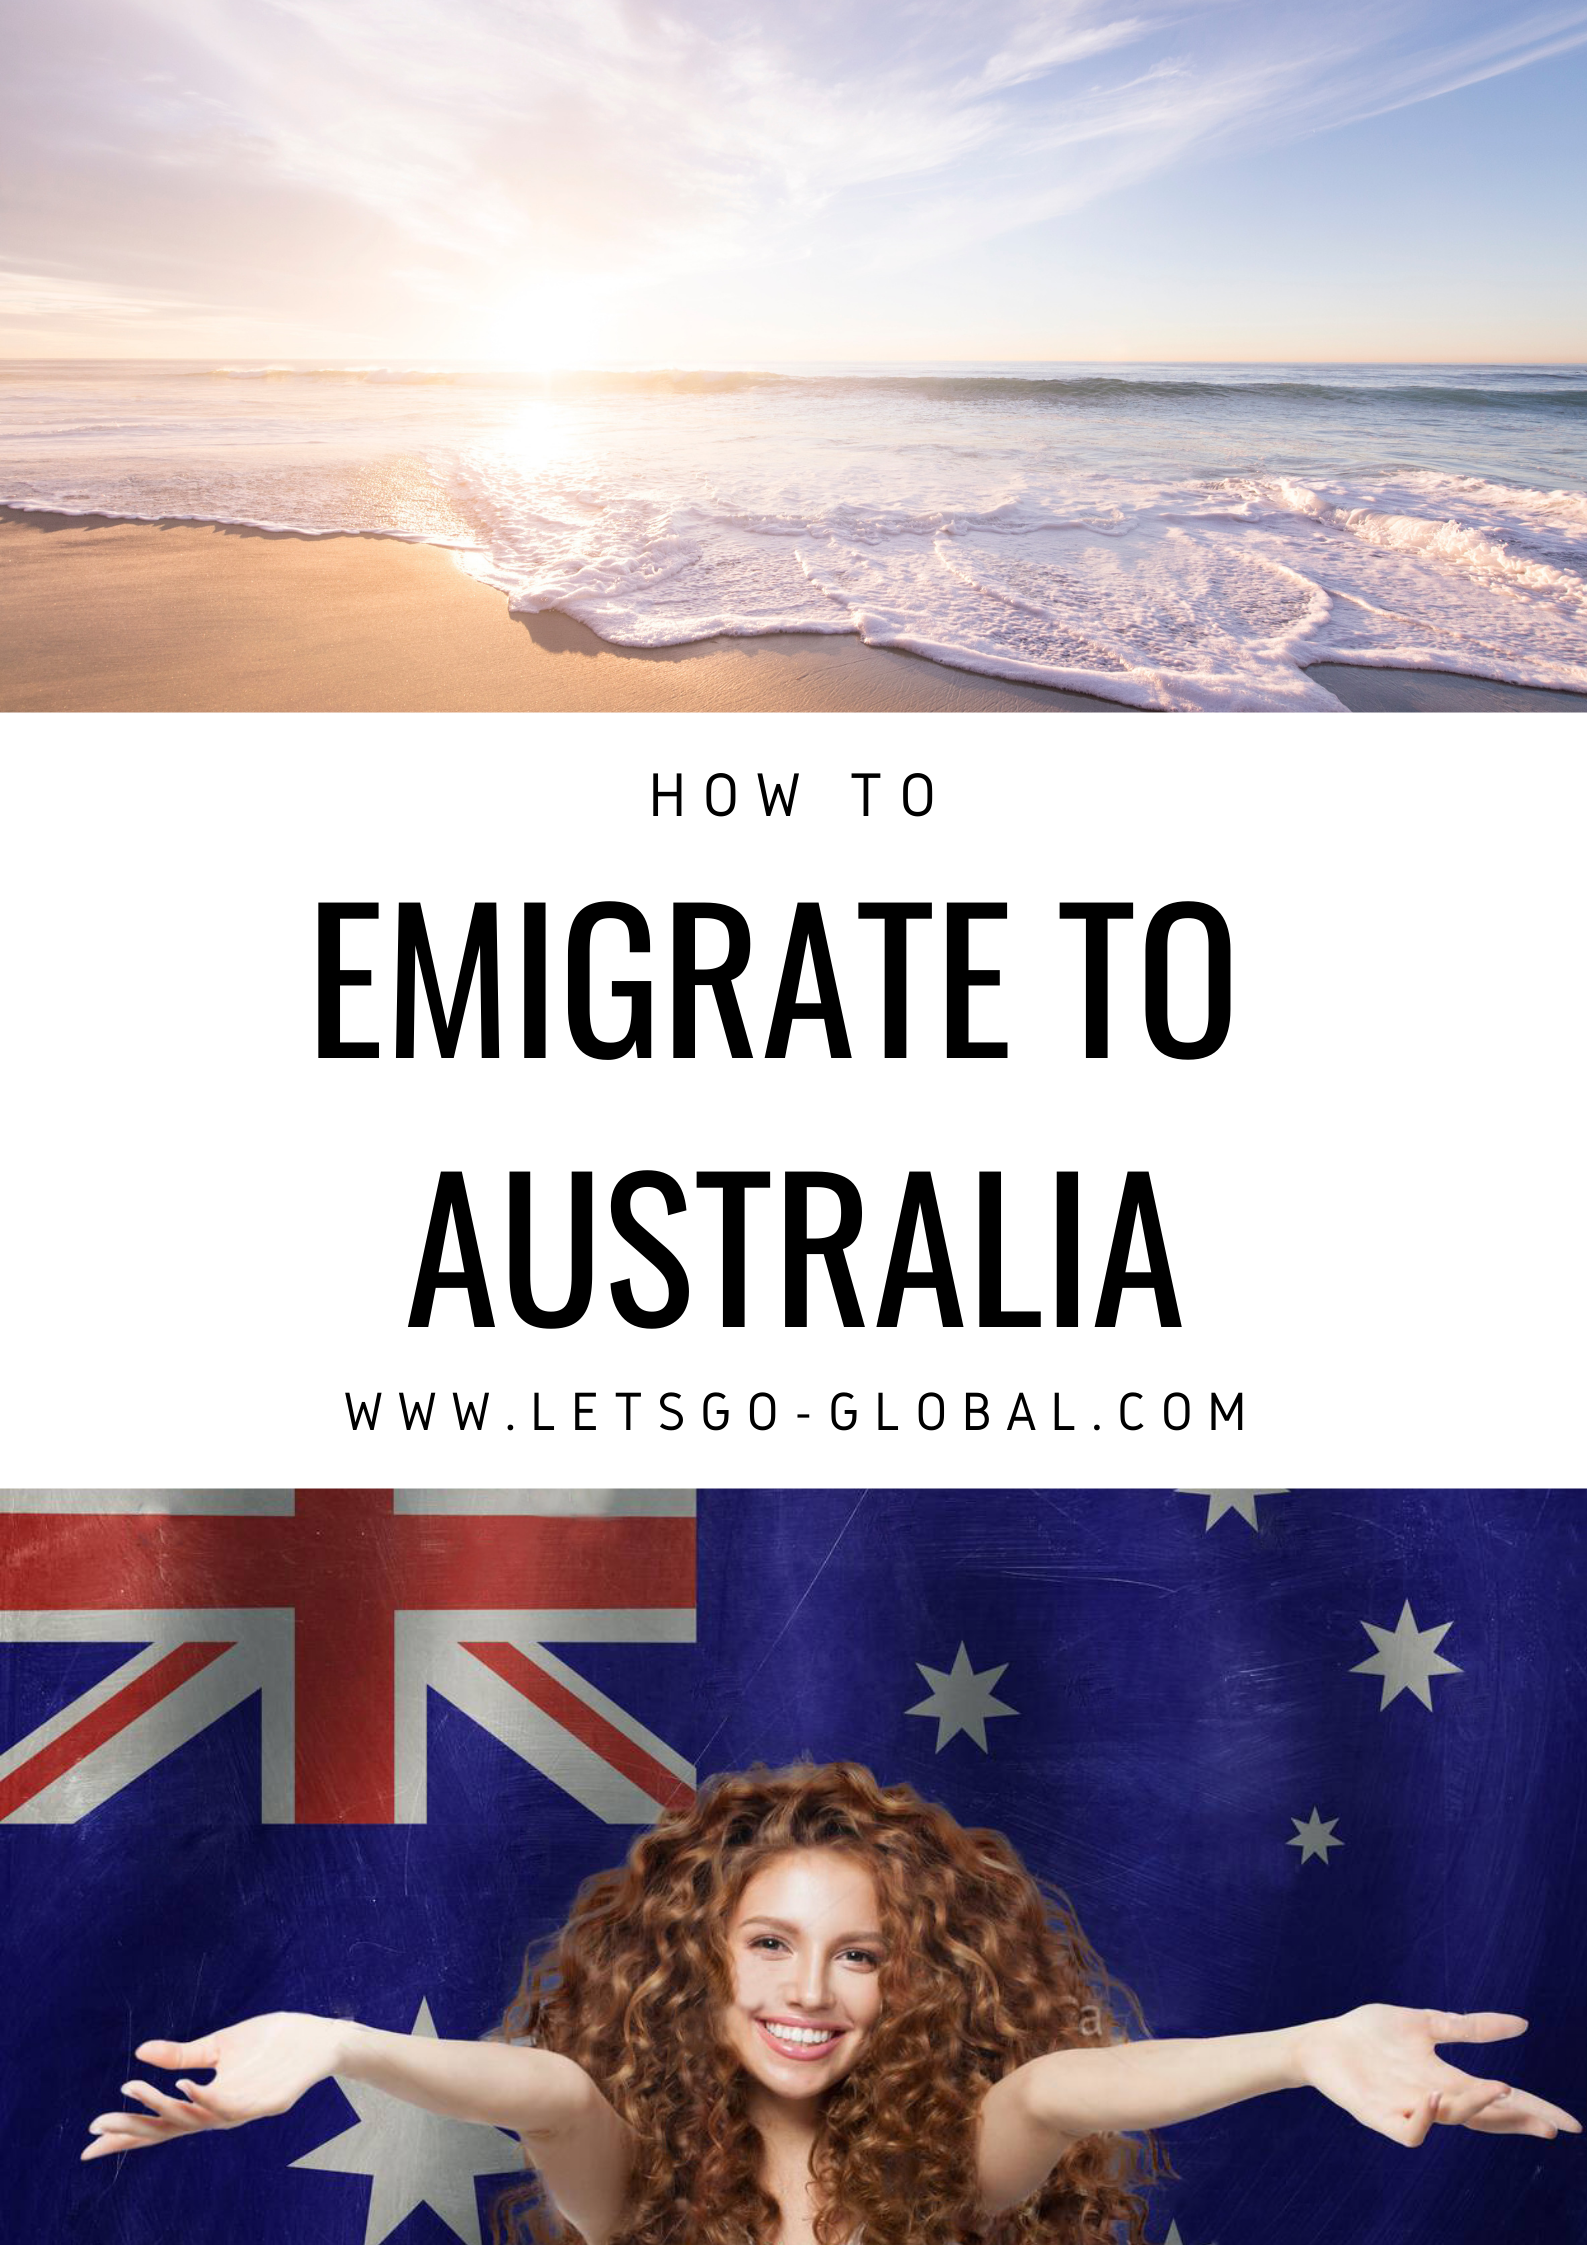 Emigrate to Australia as a Youth Worker